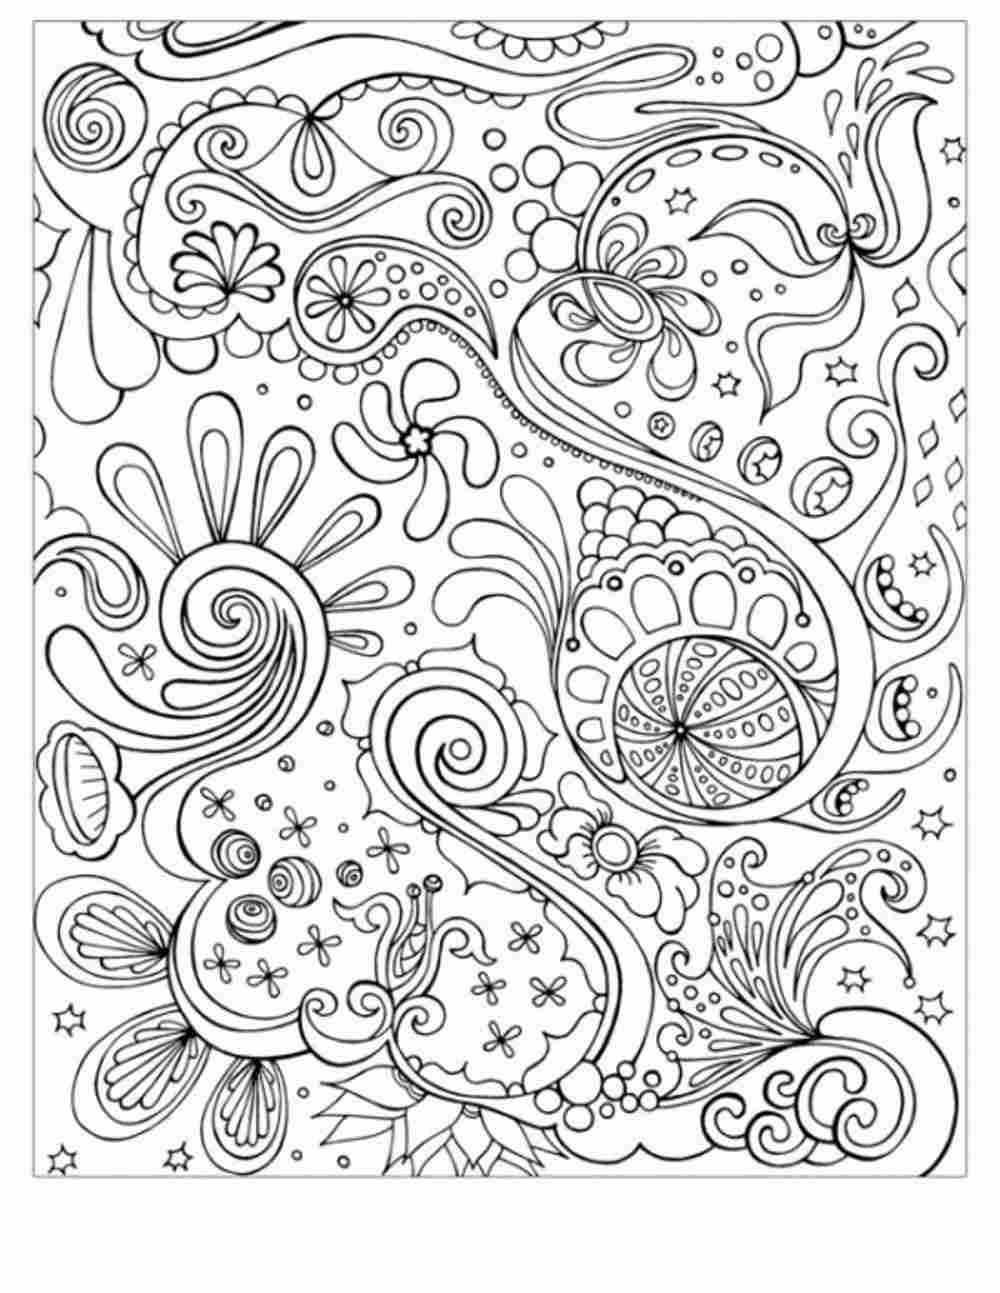 Download Free Pdf Coloring Pages For Adults at GetColorings.com | Free printable colorings pages to print ...